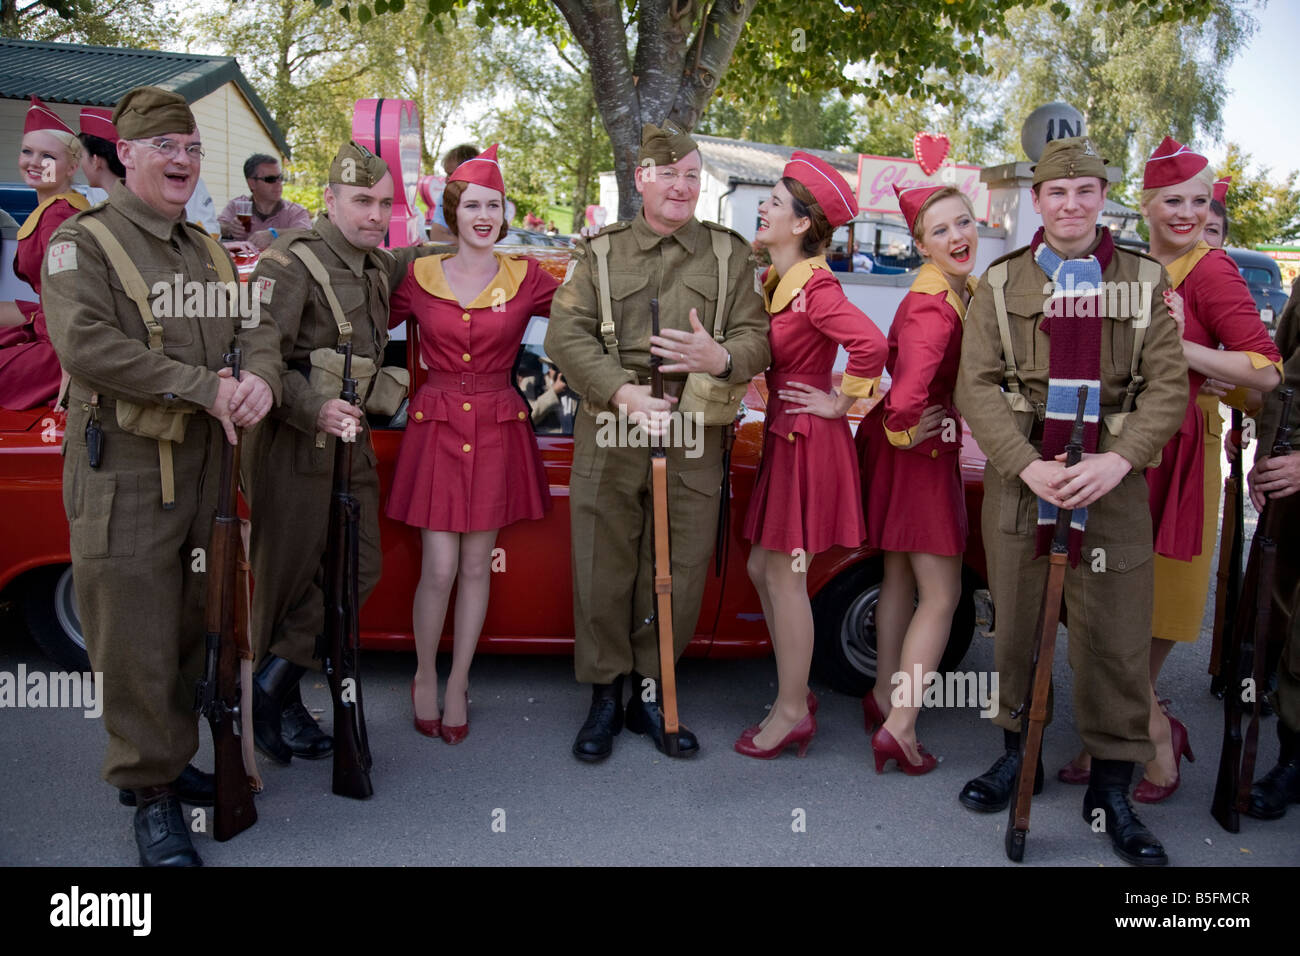 Goodwood Revival Faschings Papas Armee und Glam-Kabinen Stockbild